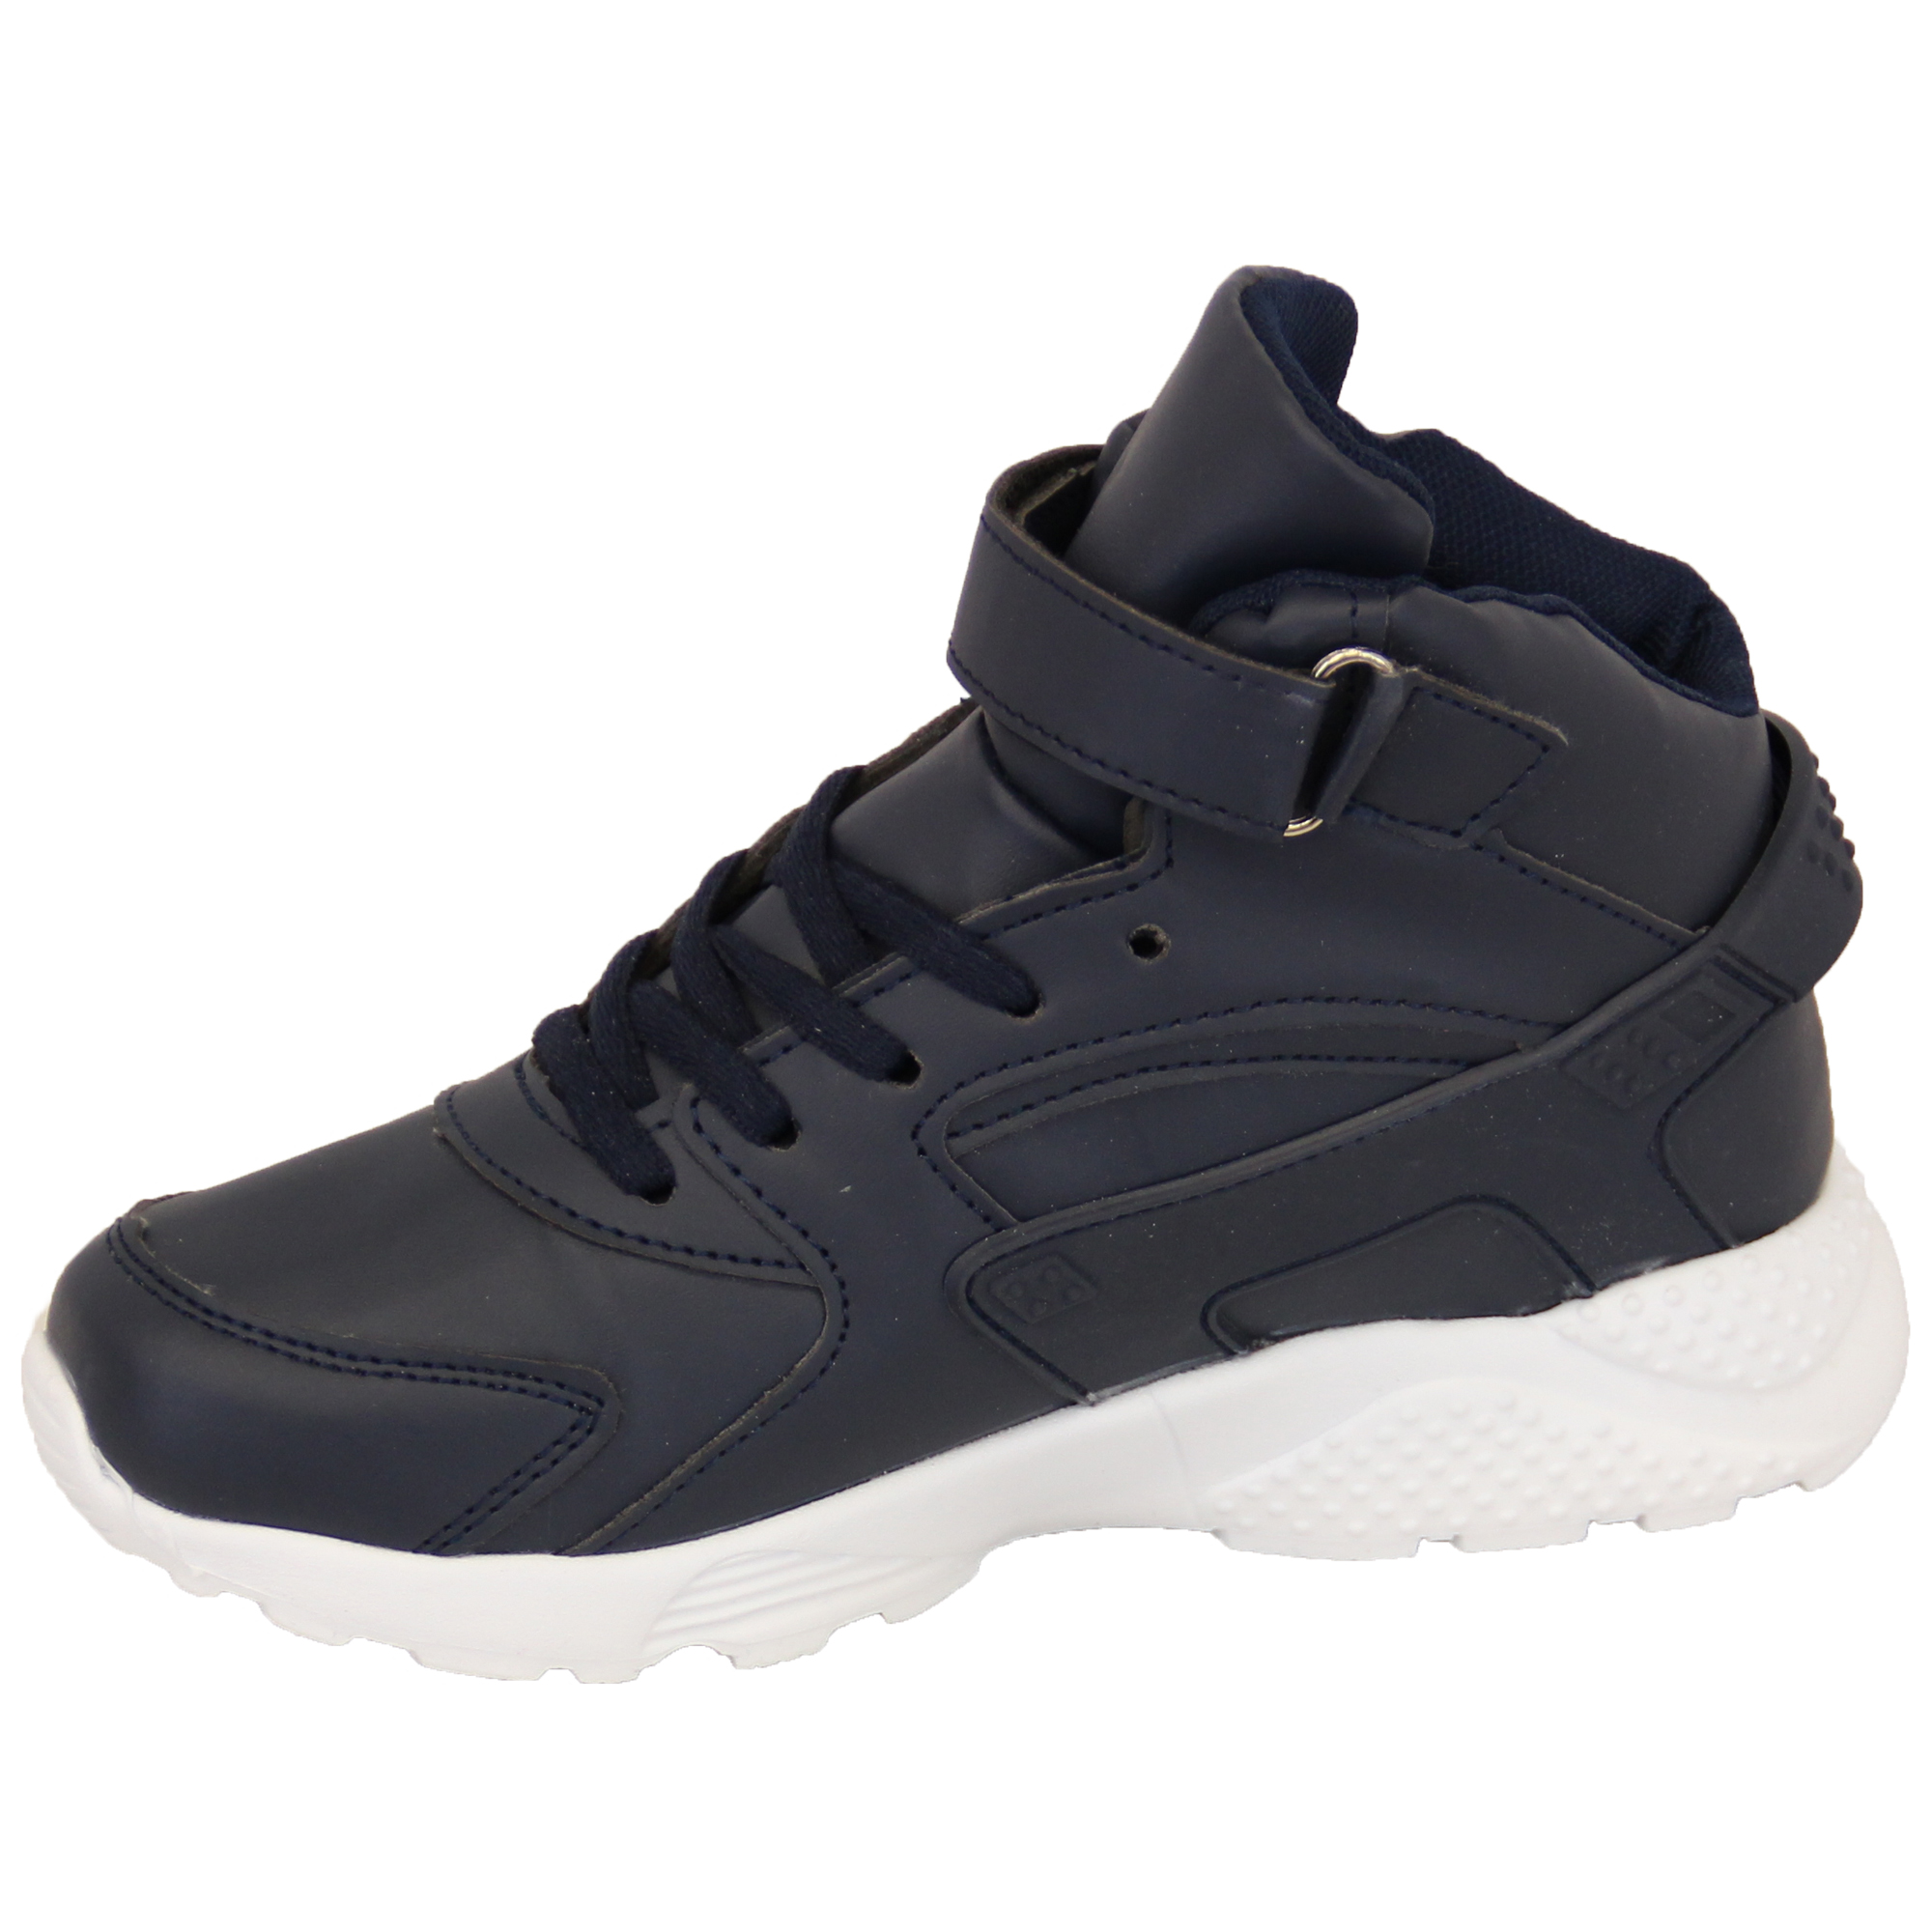 Boys Trainers Kids Velcro Lace Up Infants High Ankle Pumps Tennis Shoes Casual | EBay